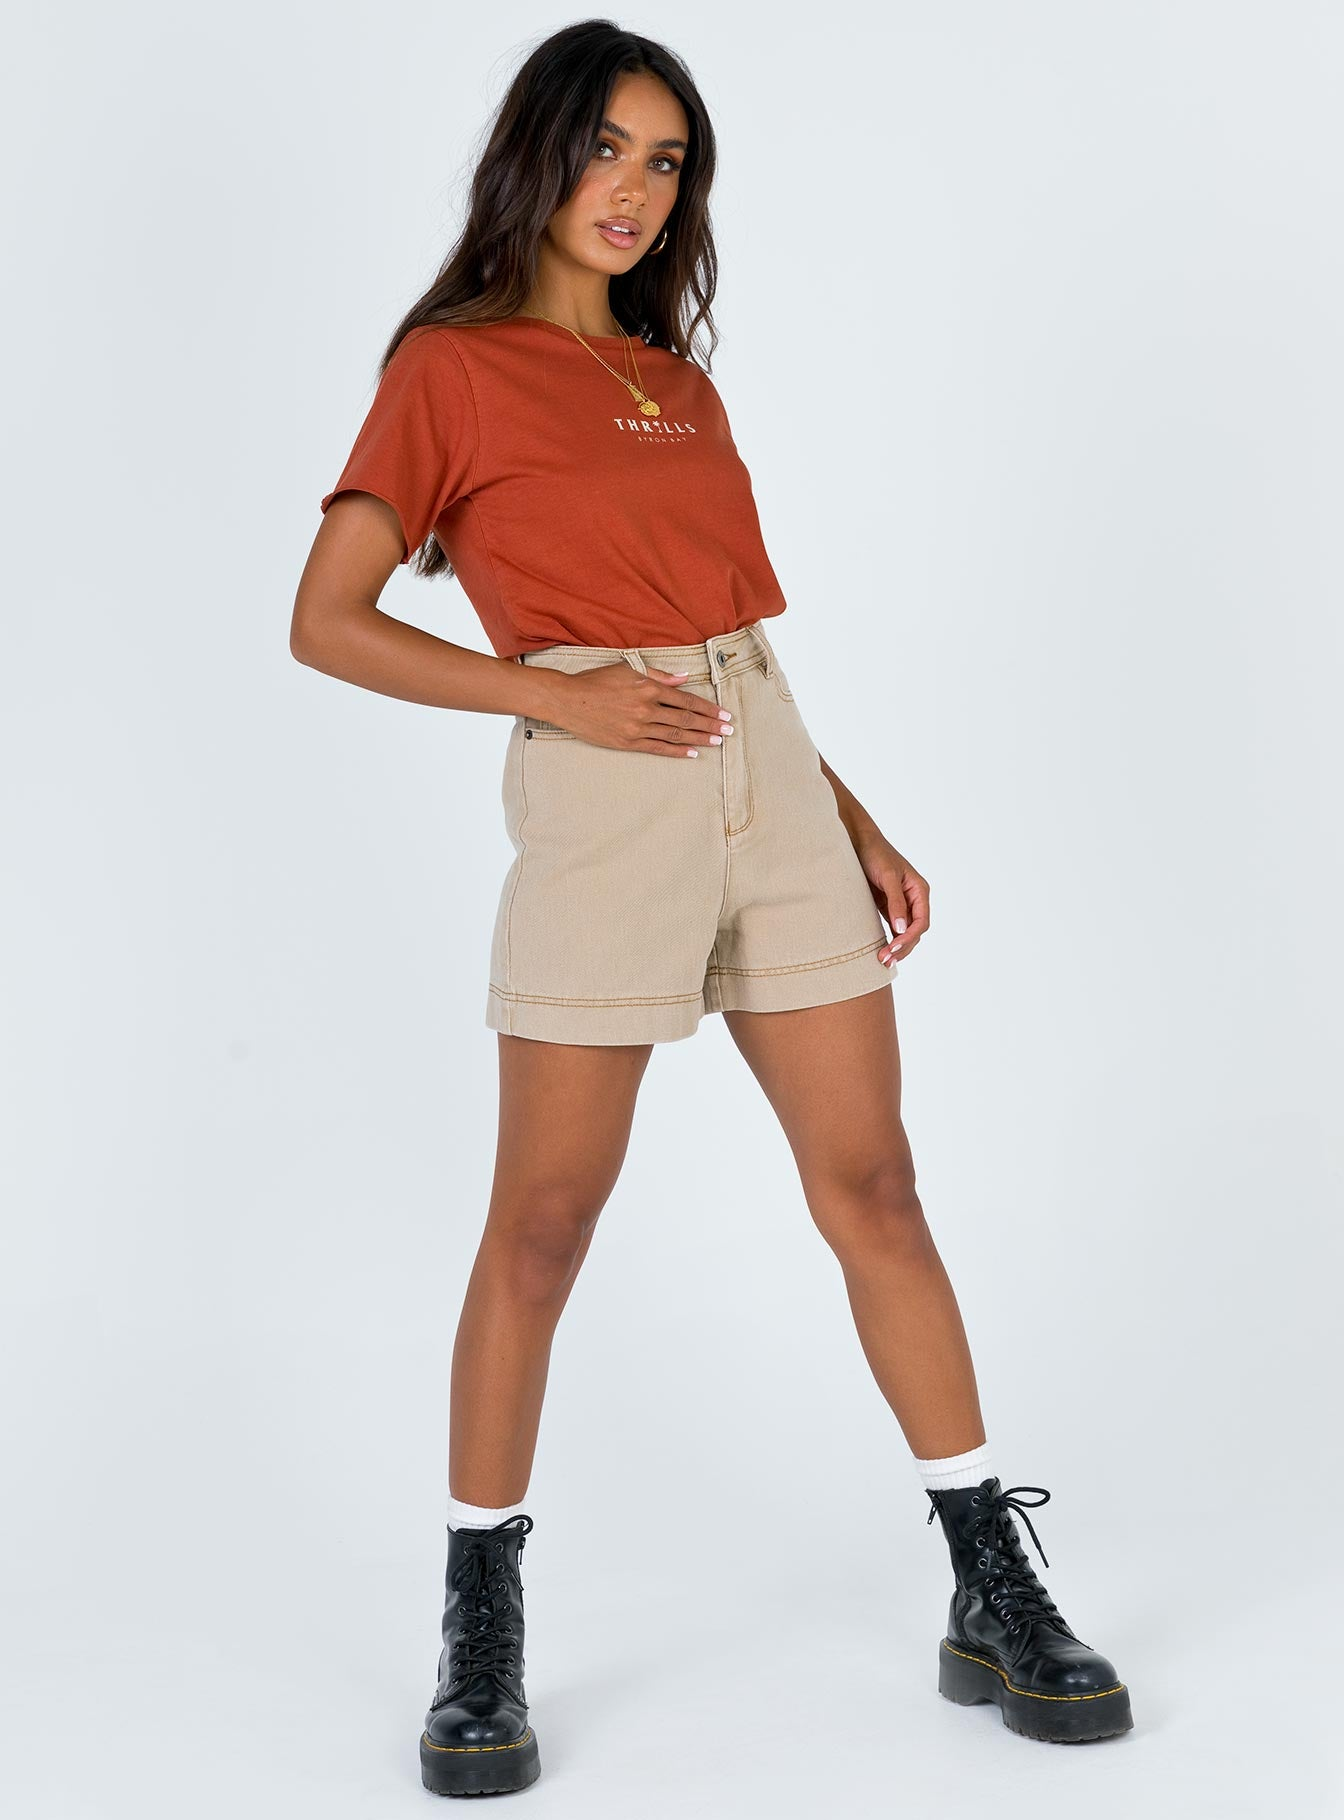 Thrills Palmed Thrills Loose Fit Tee Rocker Red